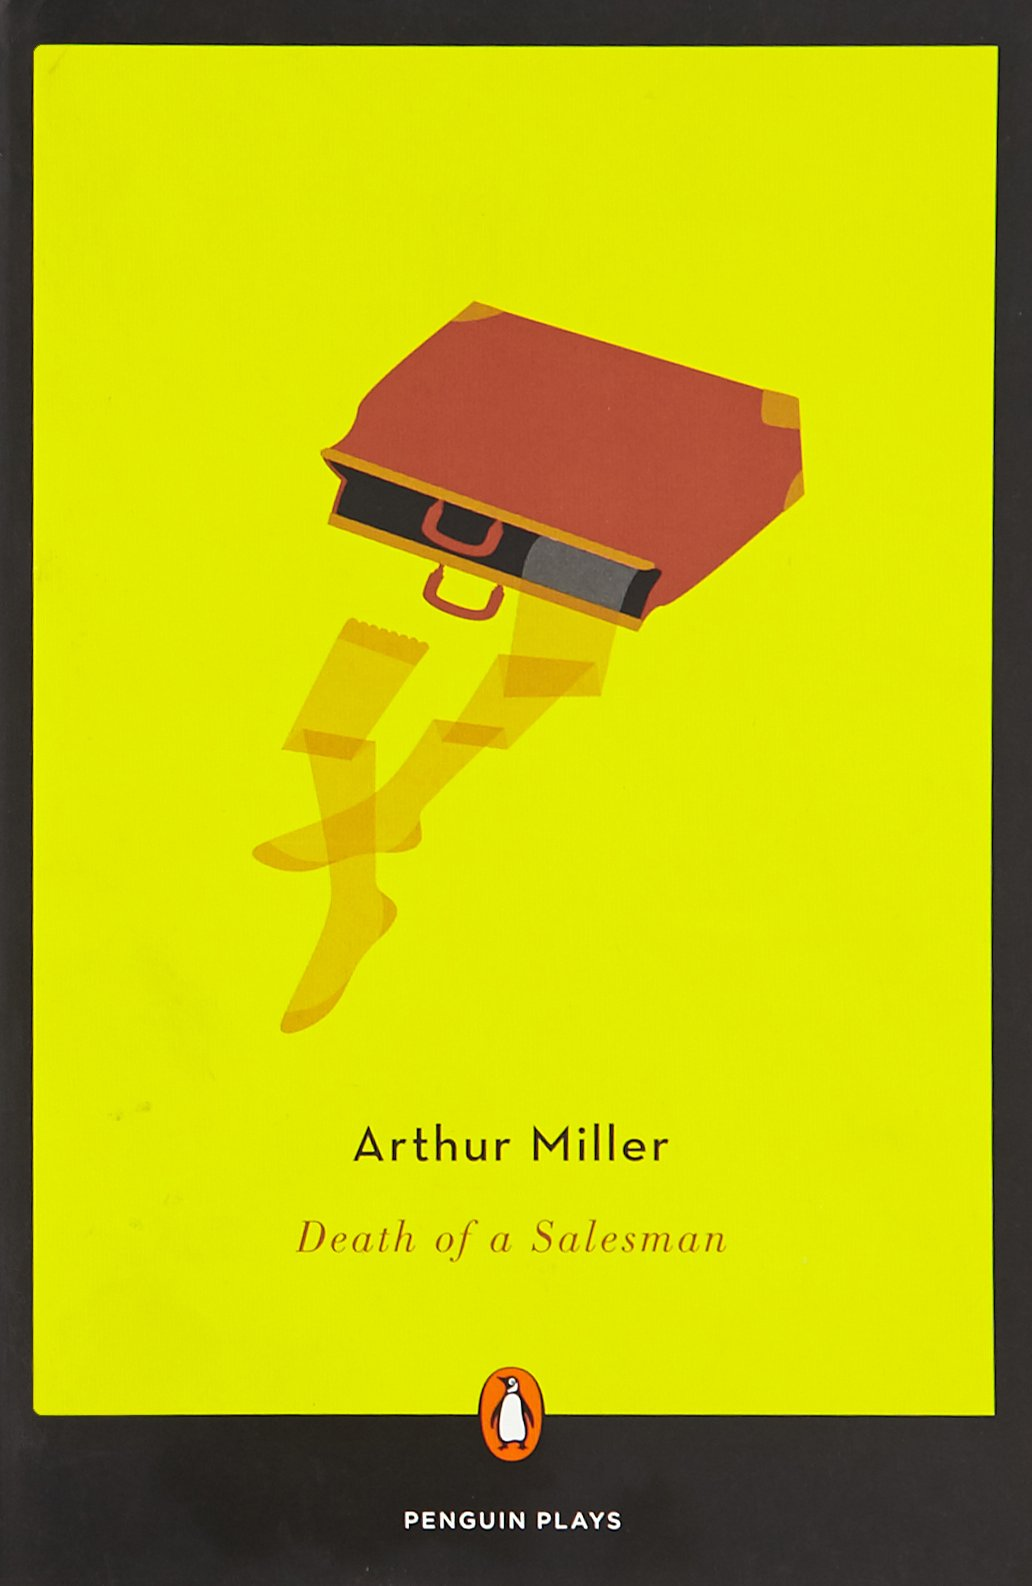 What is Arthur Miller's view of the